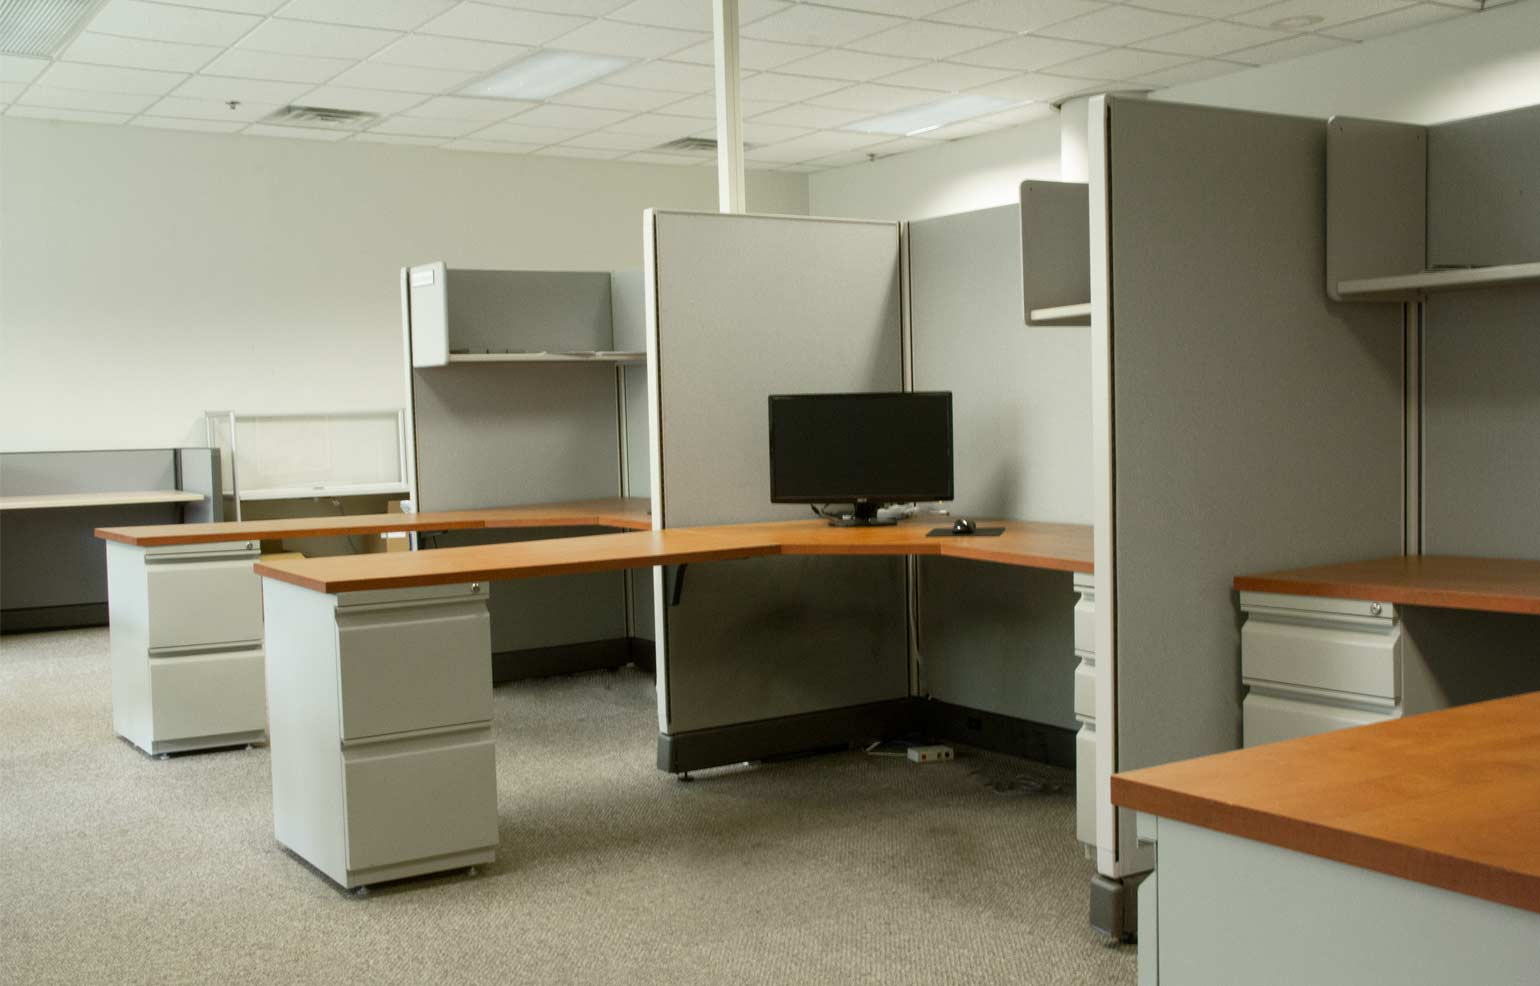 Peachy Devon Office Furnitures Office Cubicle Installations Home Interior And Landscaping Ologienasavecom